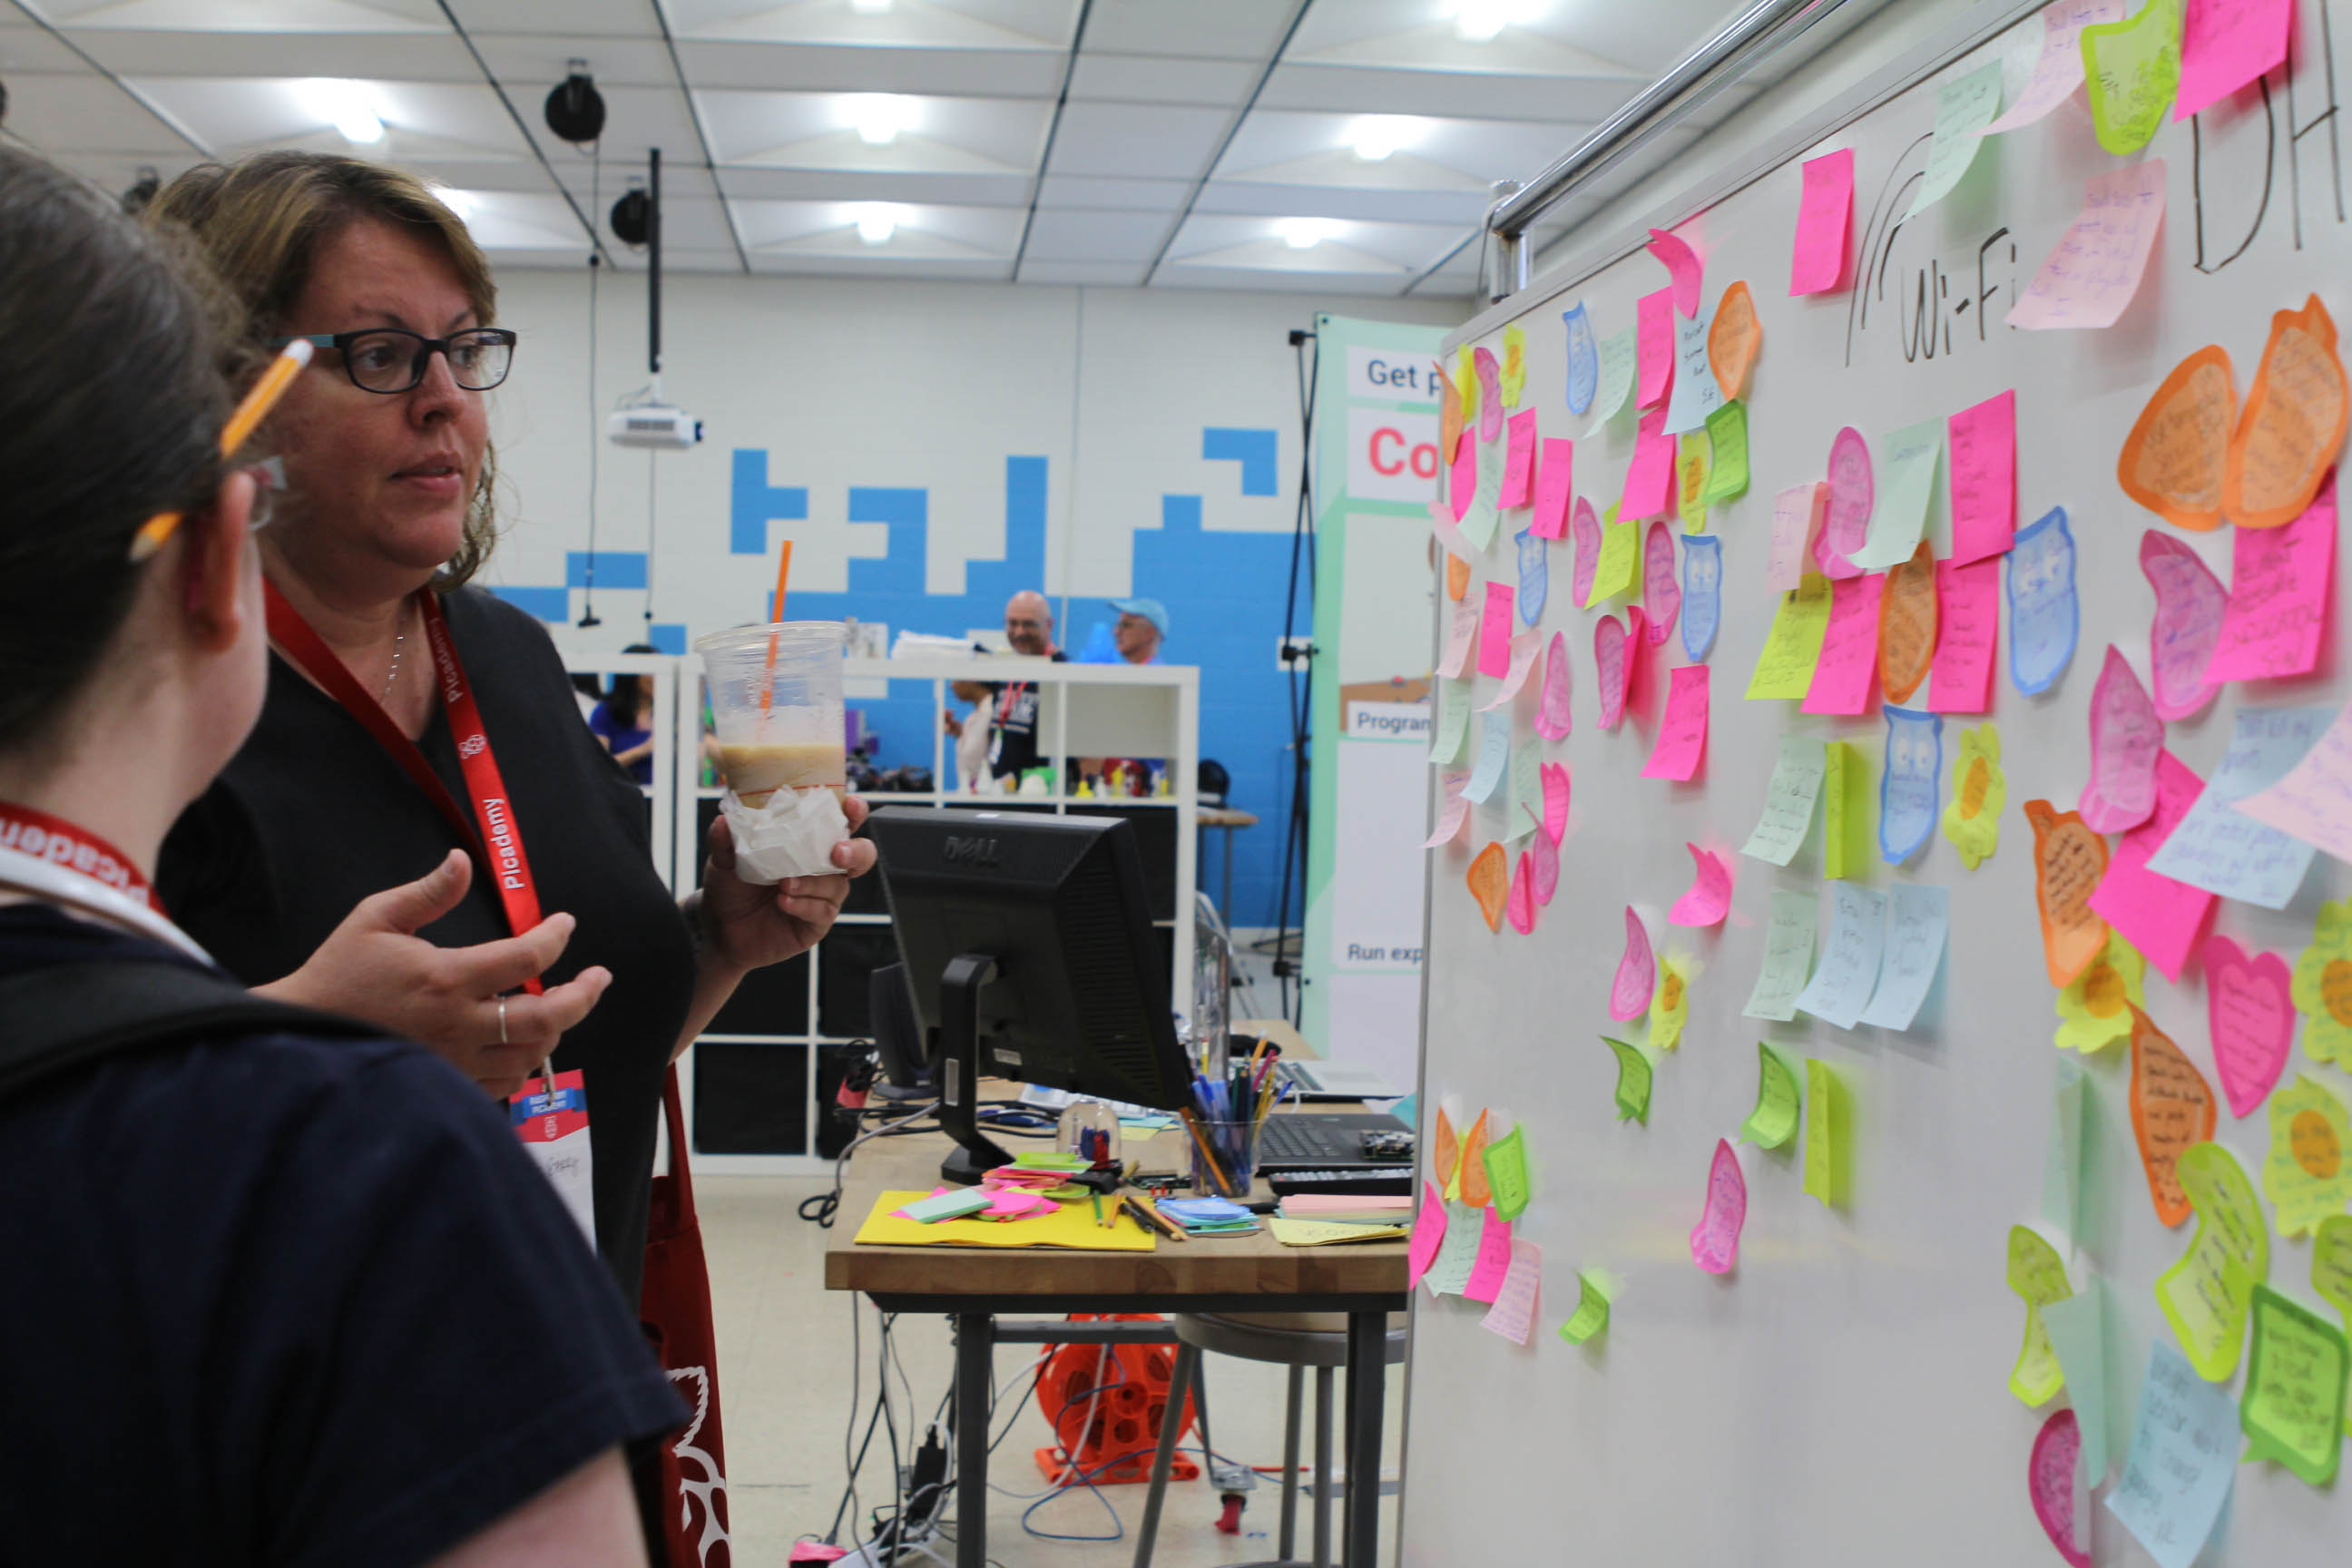 Image of a group designing a project, using post-it notes on a wall.